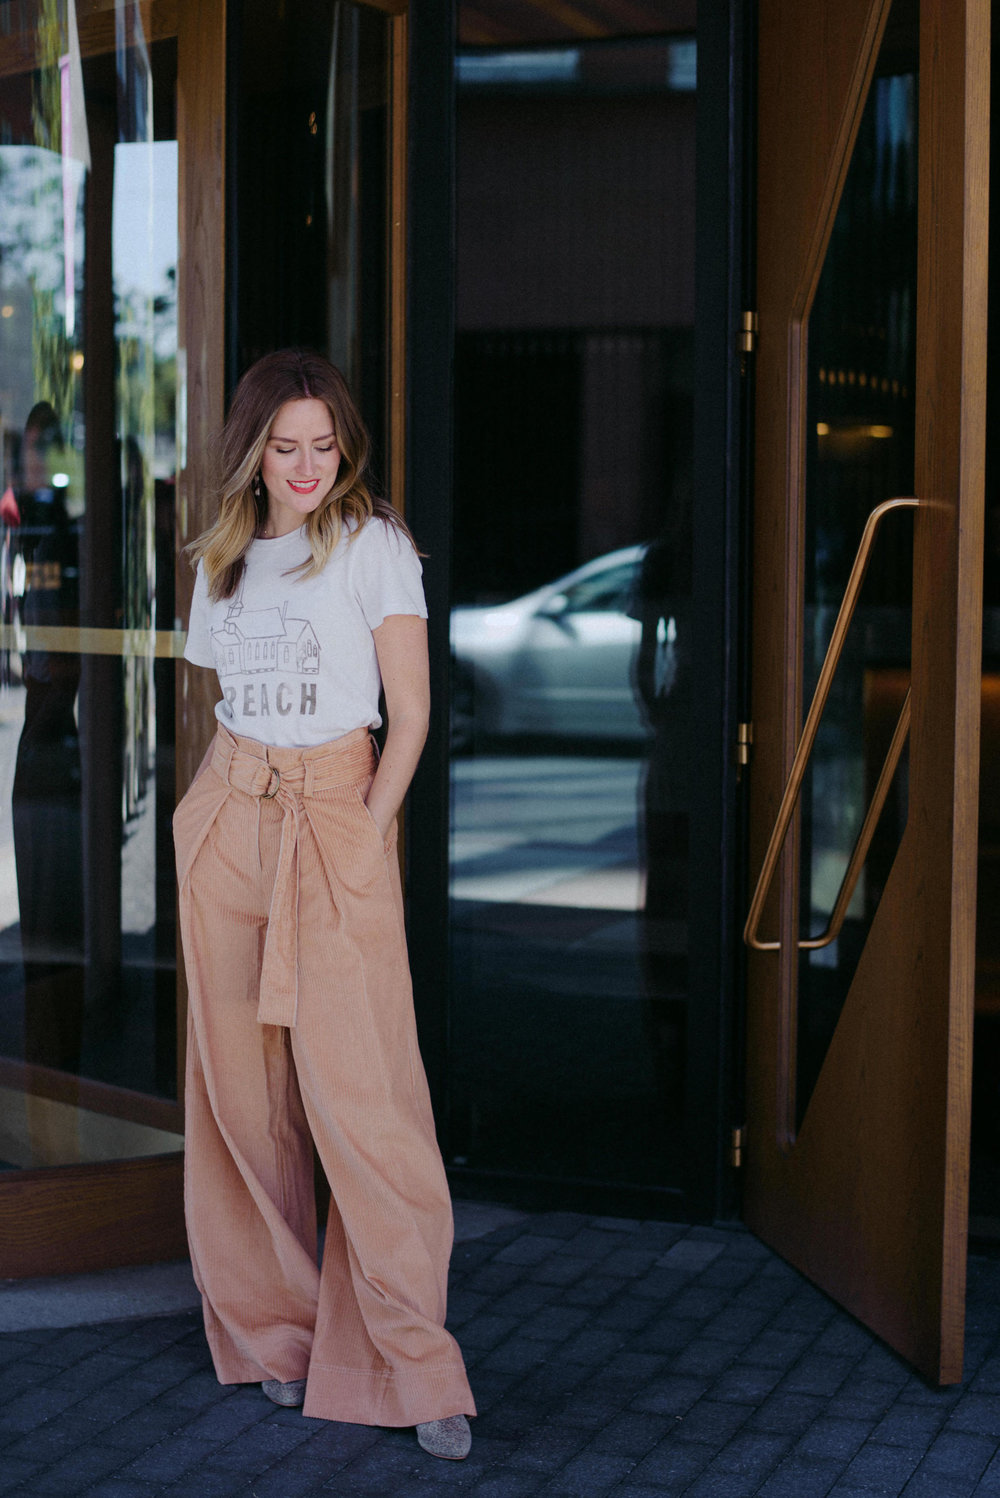 Wide leg corduroy pants with a tee // A Week Of  Nashville-Chic Ethical Outfits With Jordan Soderholm, Fashion Director At ABLE on The Good Trade